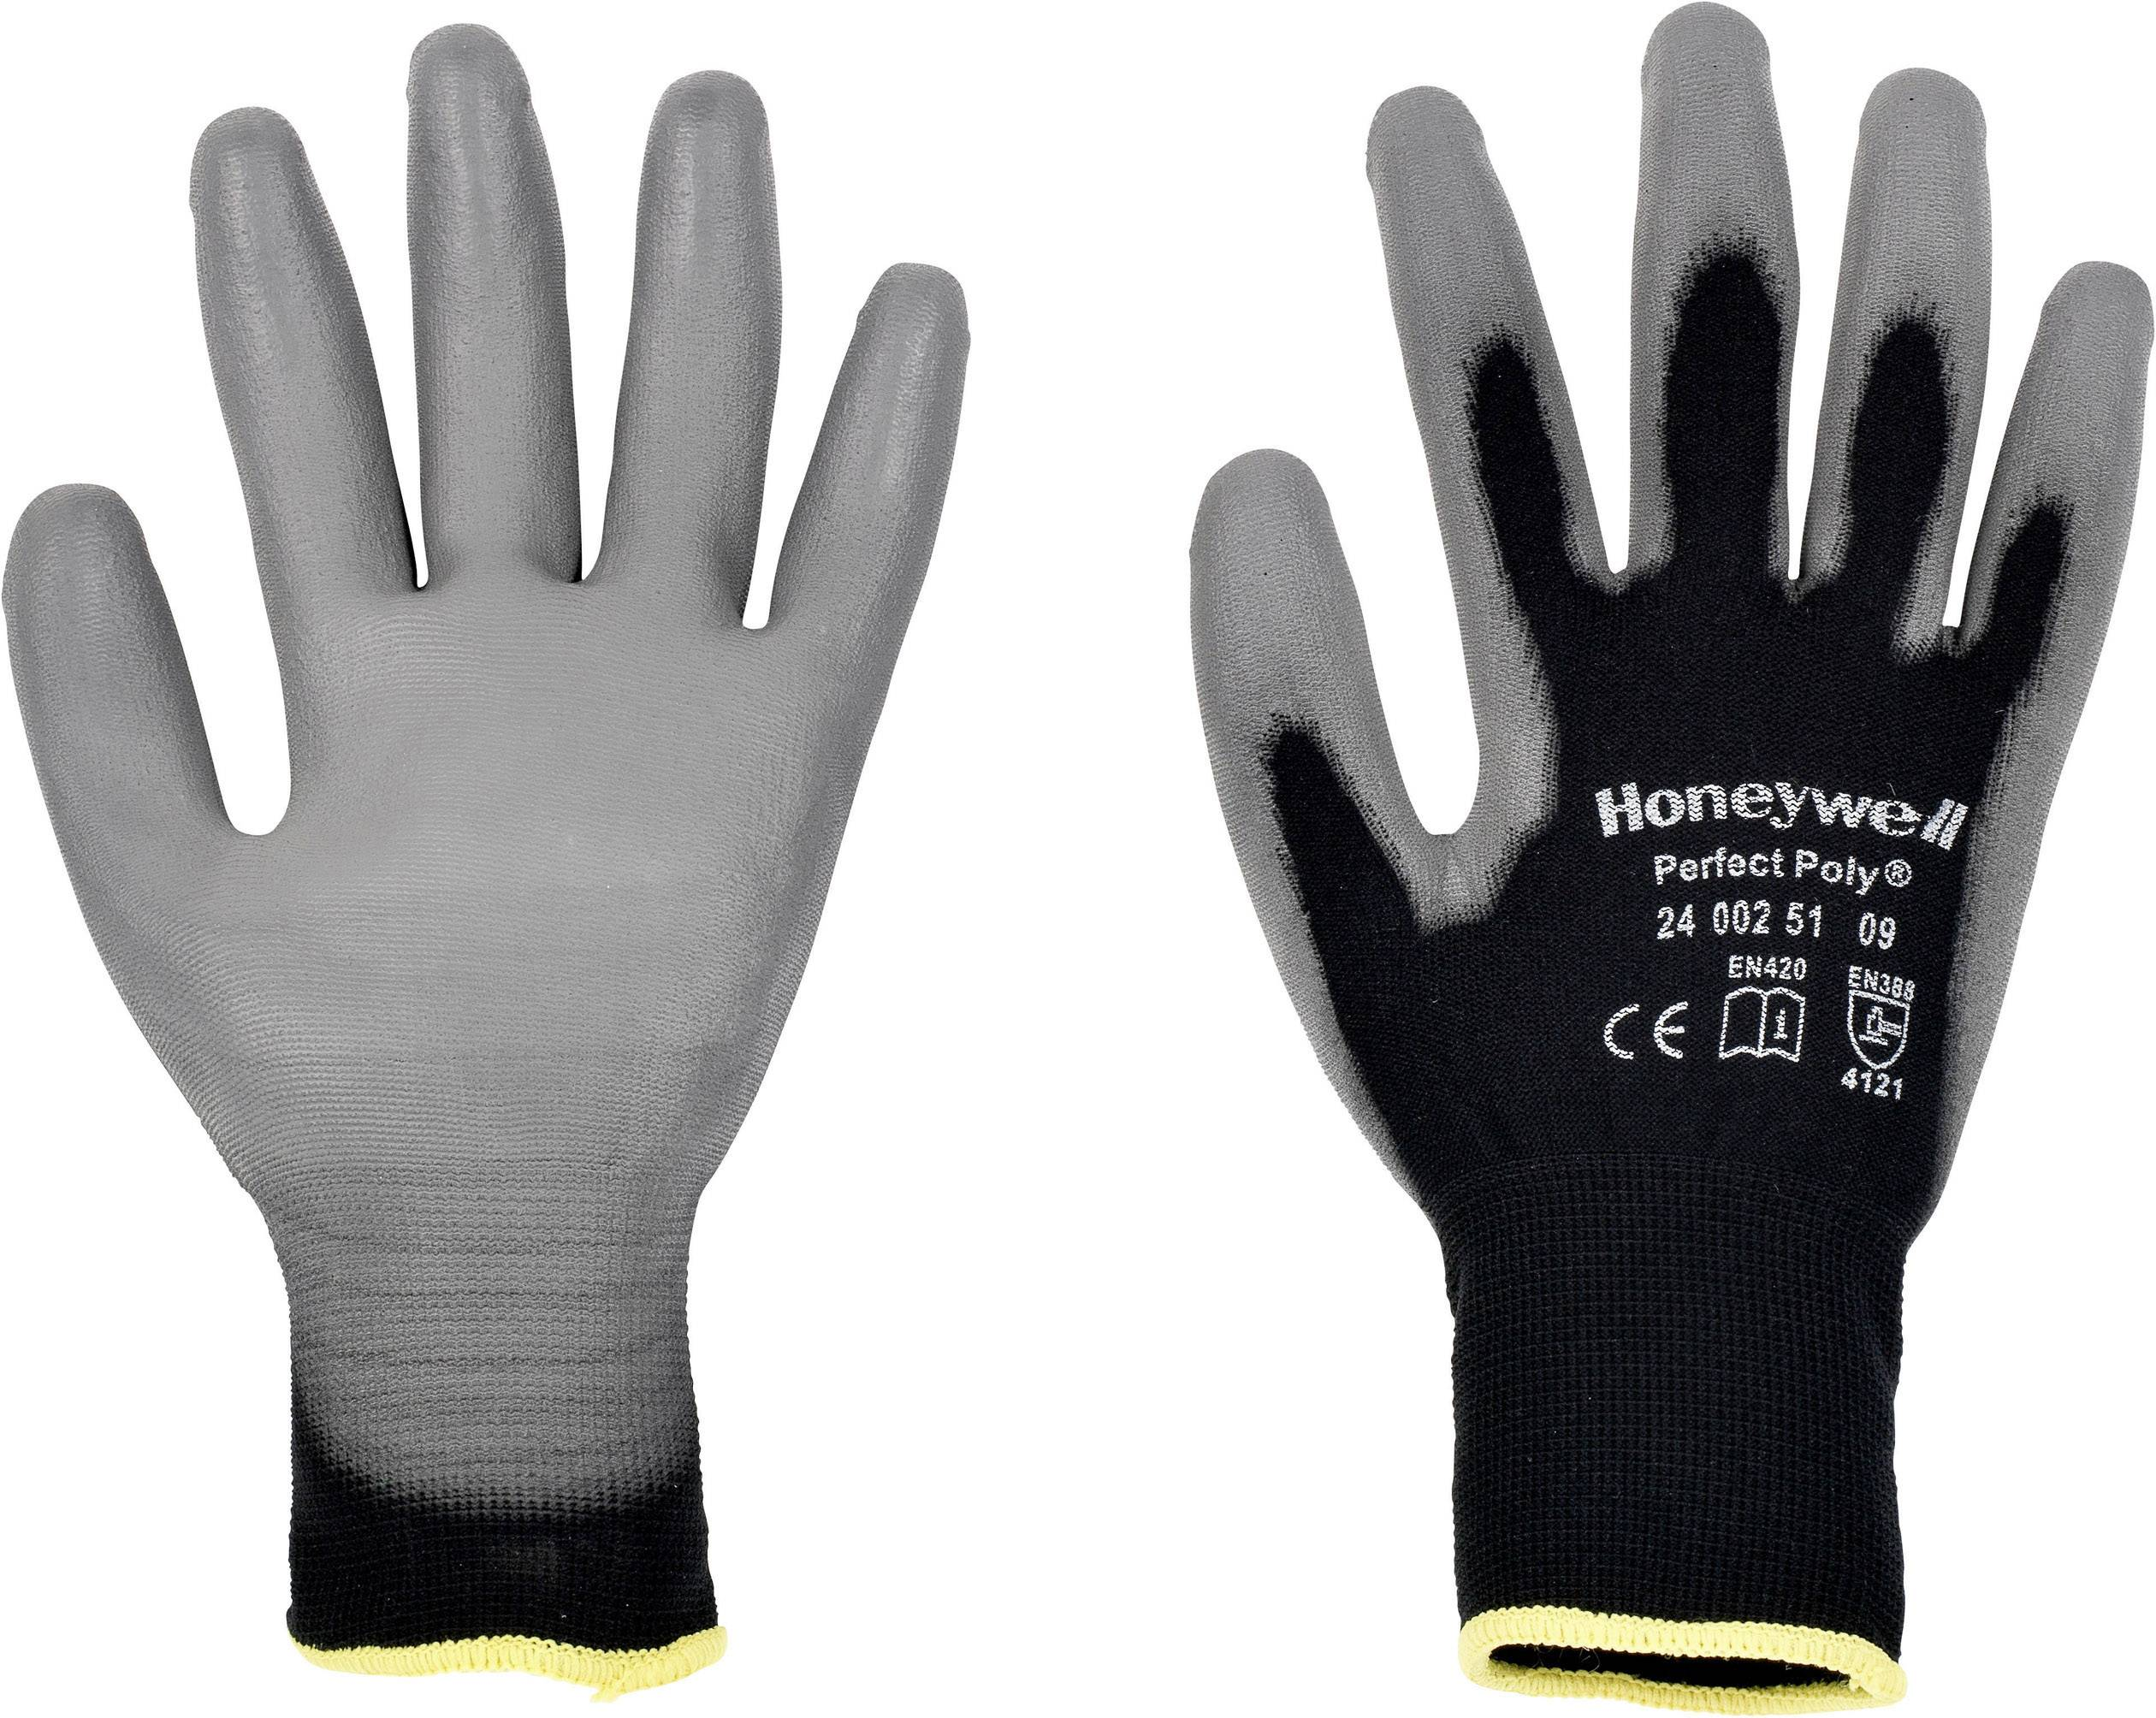 Pracovné rukavice Perfect Fit GANTS NOIRS PERFECTPOLY 2400251, velikost rukavic: 10, XL